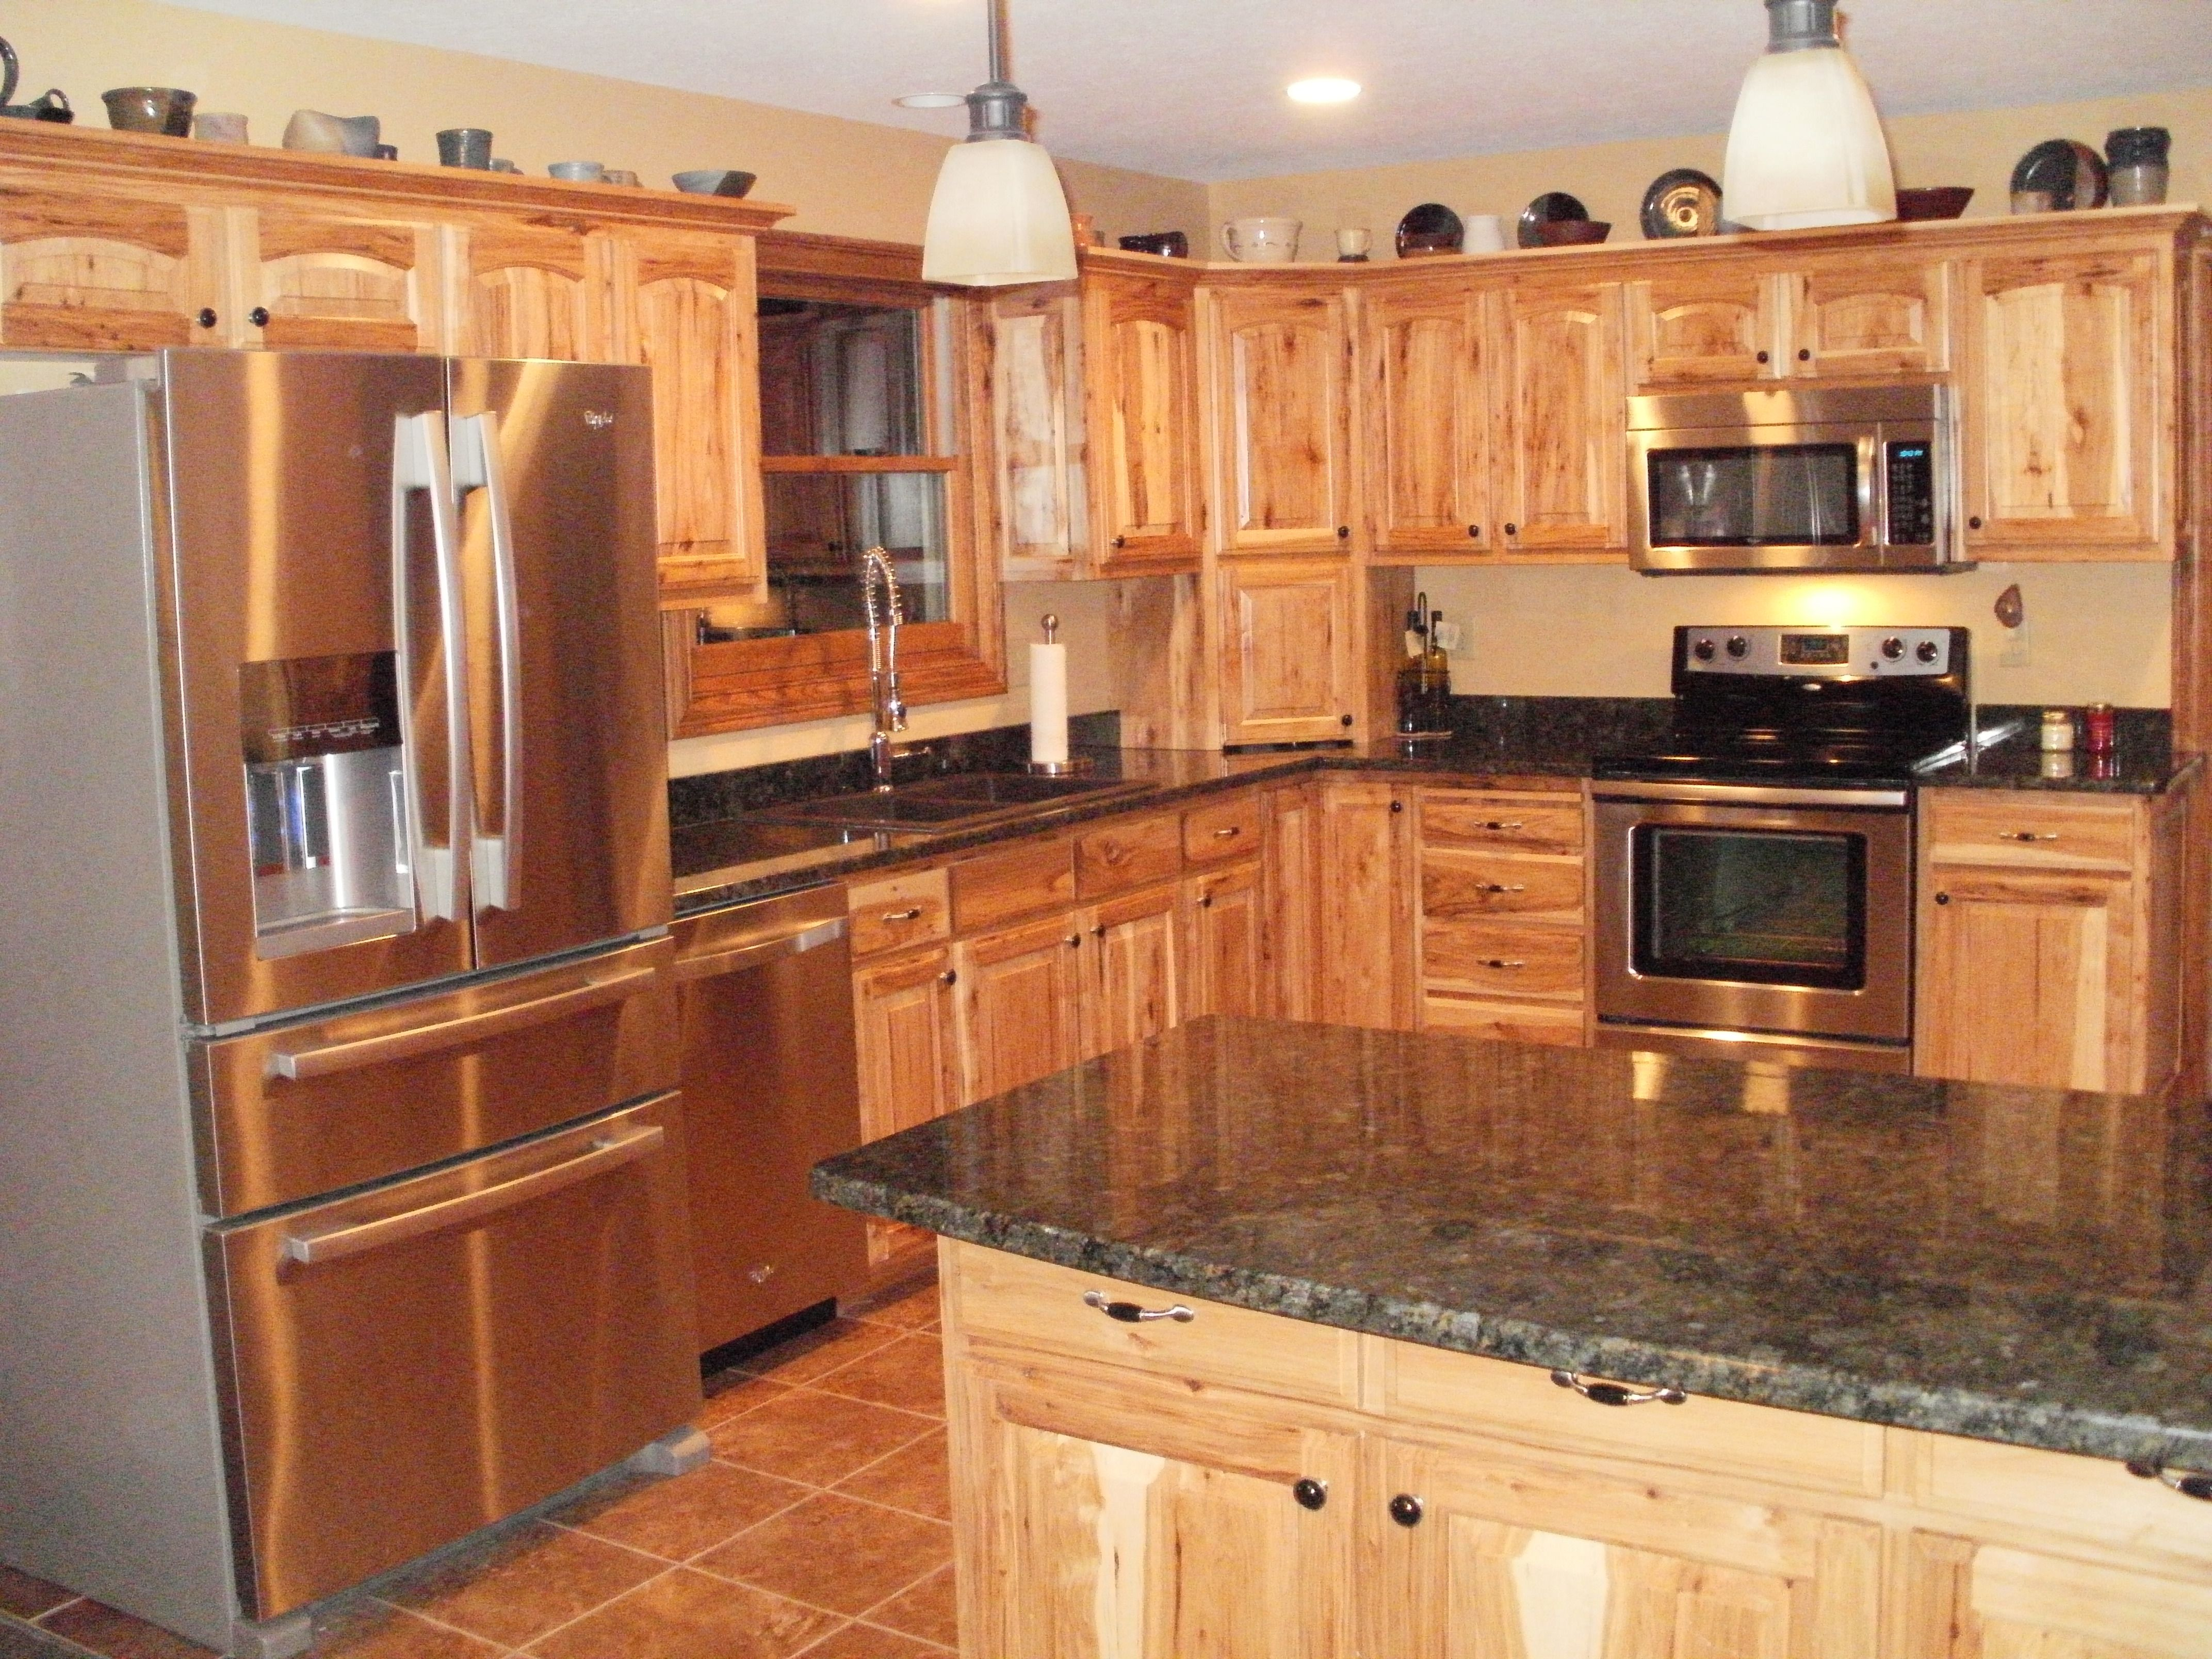 hampton natural hickory kitchen cabinets hampton bay kitchen cabinets 17 Best Ideas About Natural Hickory Cabinets On Pinterest